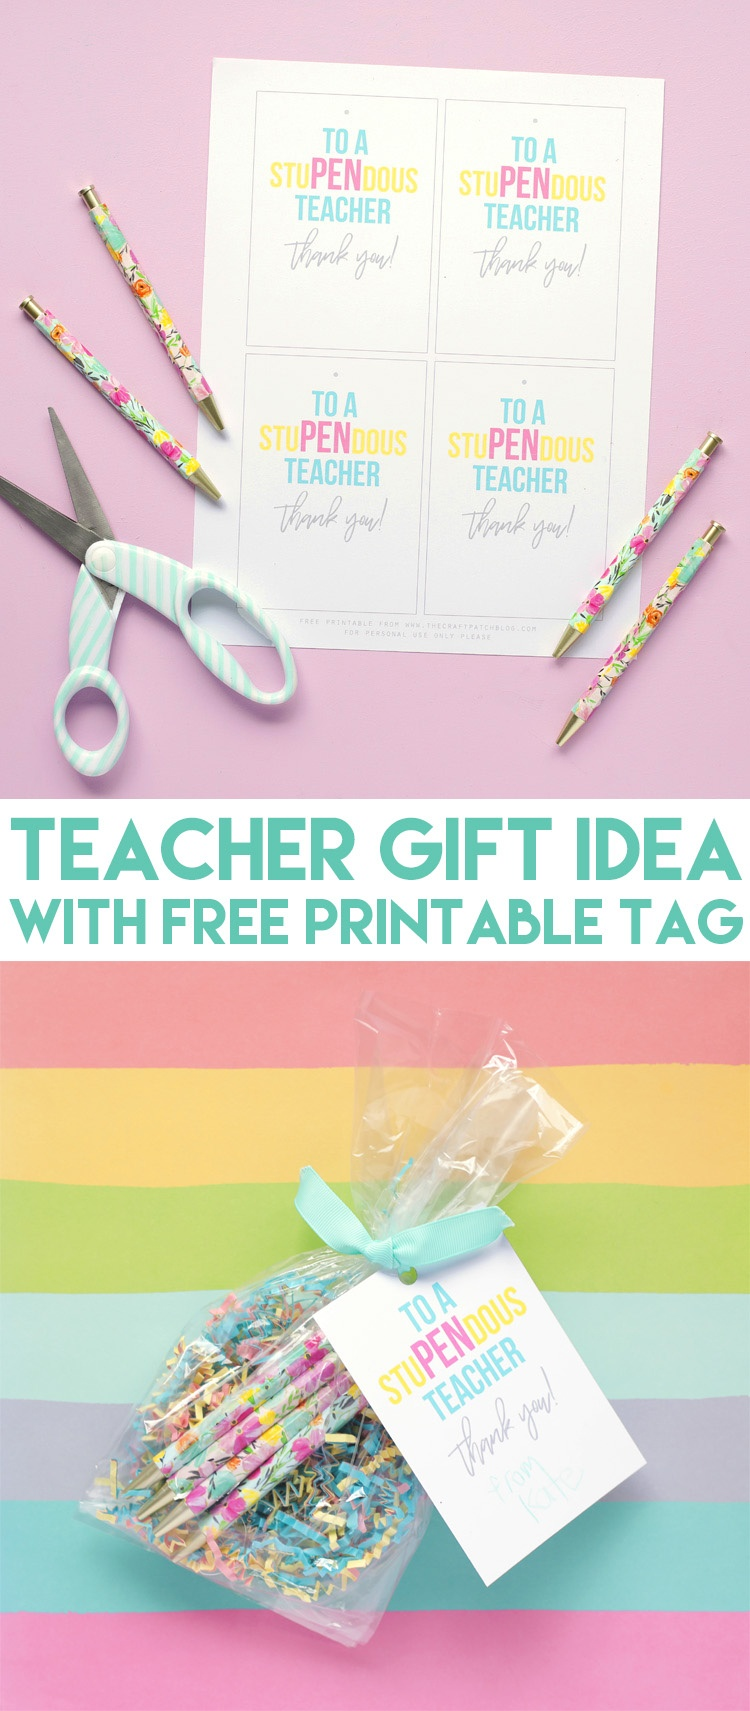 Stupendous Teacher Appreciation Gift Idea With Free Printable Tag - Free Printable Teacher Appreciation Gift Tags